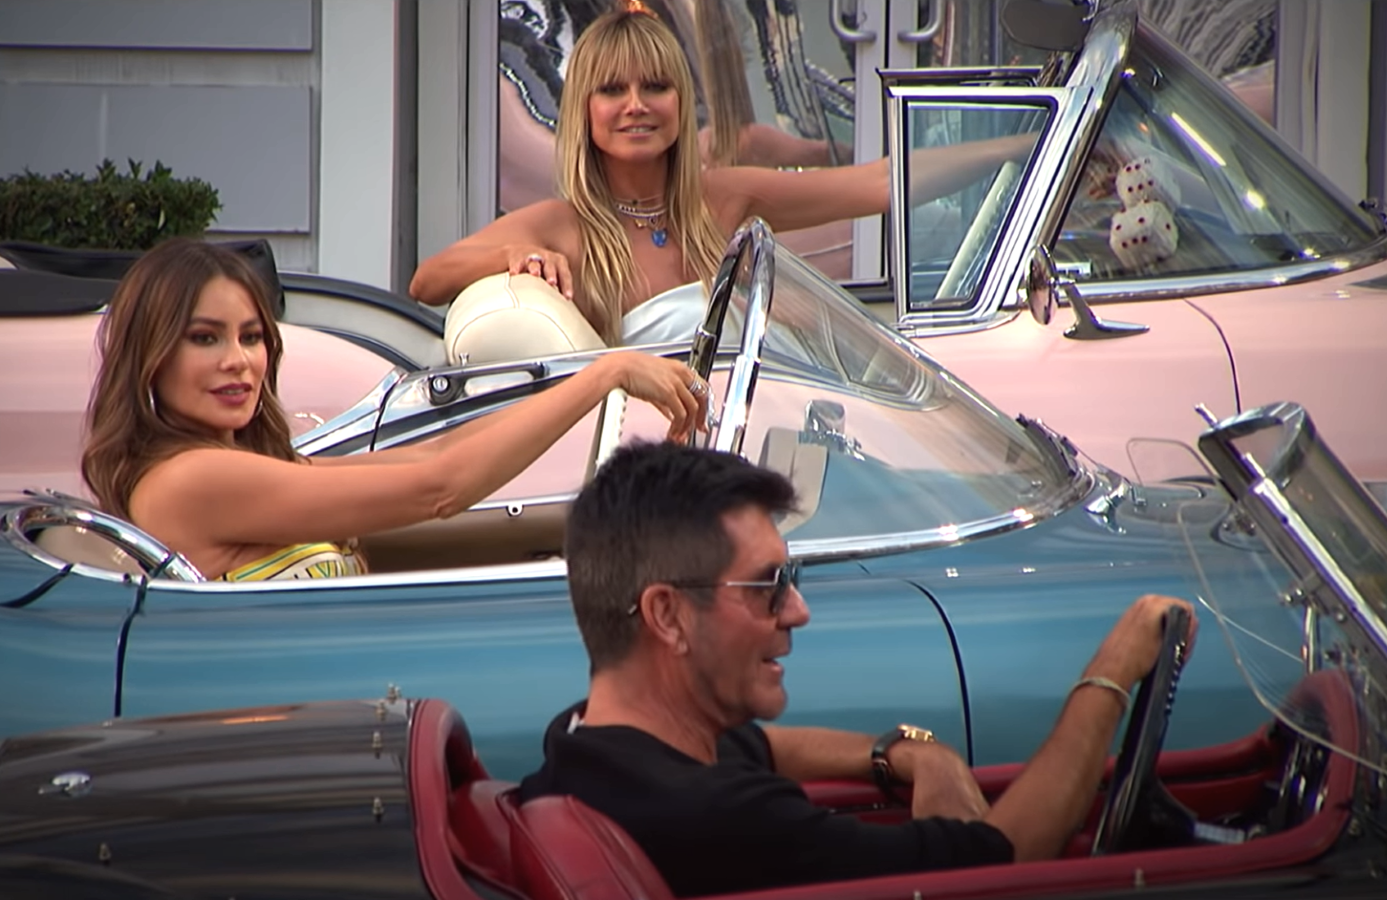 Tonight's Judge Cuts episode will see AGT's judges arrive by car as they review acts on a new drive-in movie-styled set. (NBC)